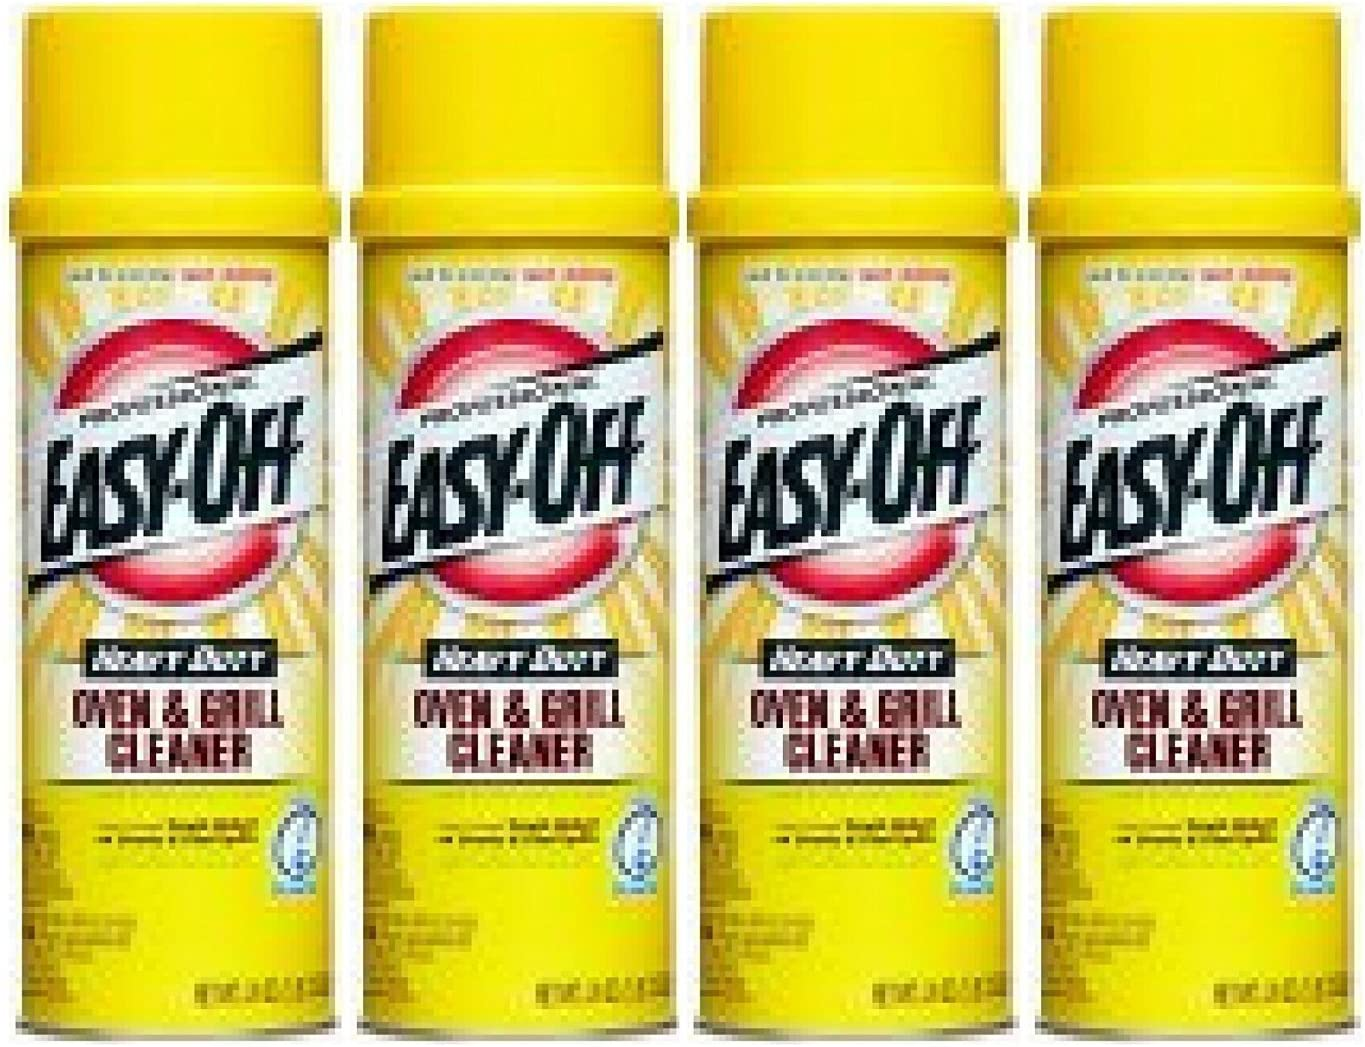 Easy-Off Heavy Duty Oven and Grill Cleaner, 24 Oz - 4 Count